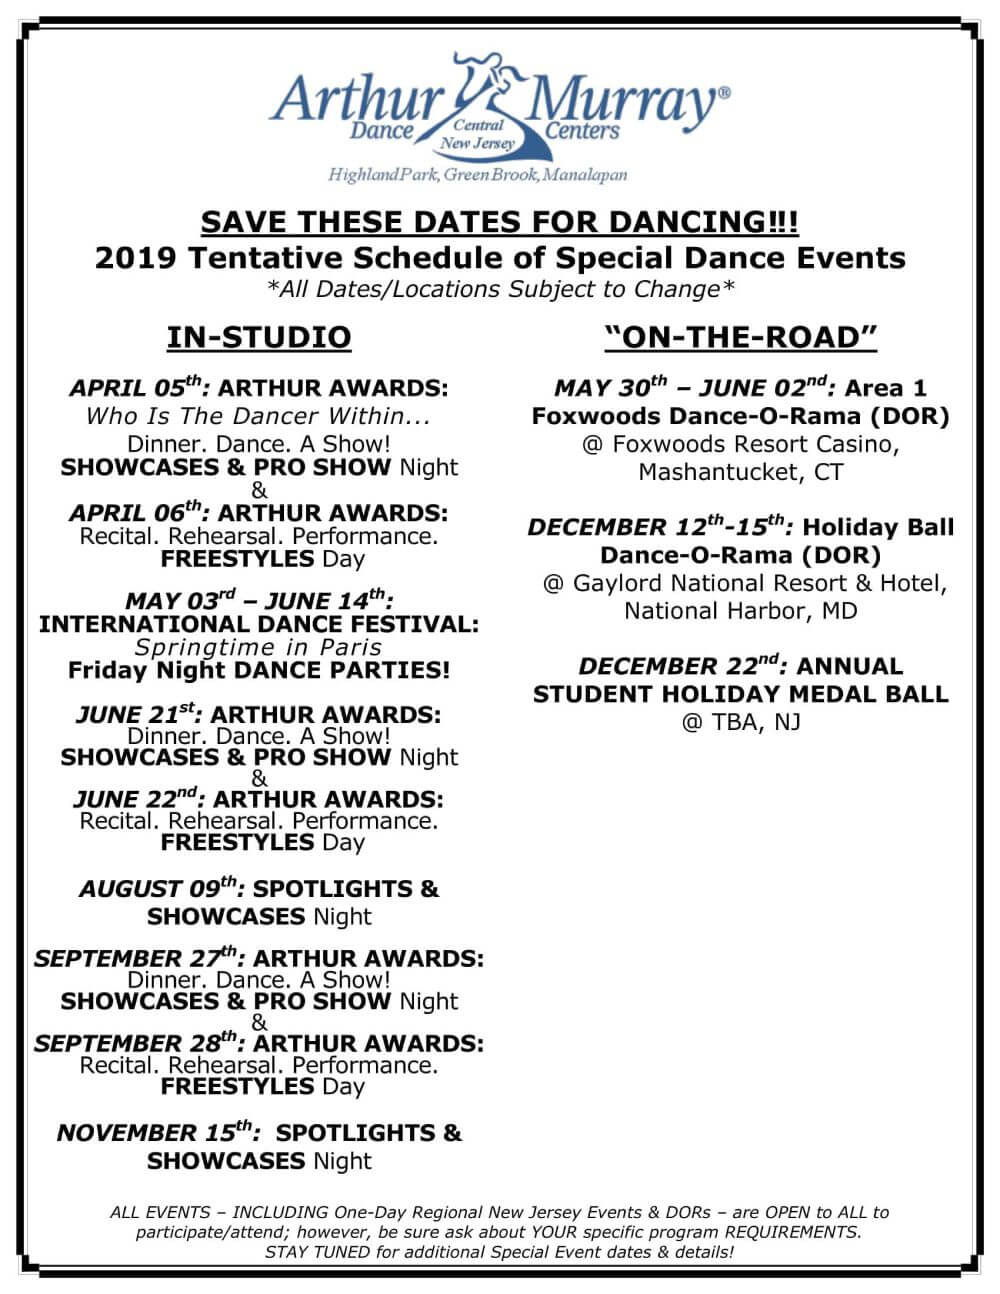 Arthur Murray Dance Studios of Central New Jersey